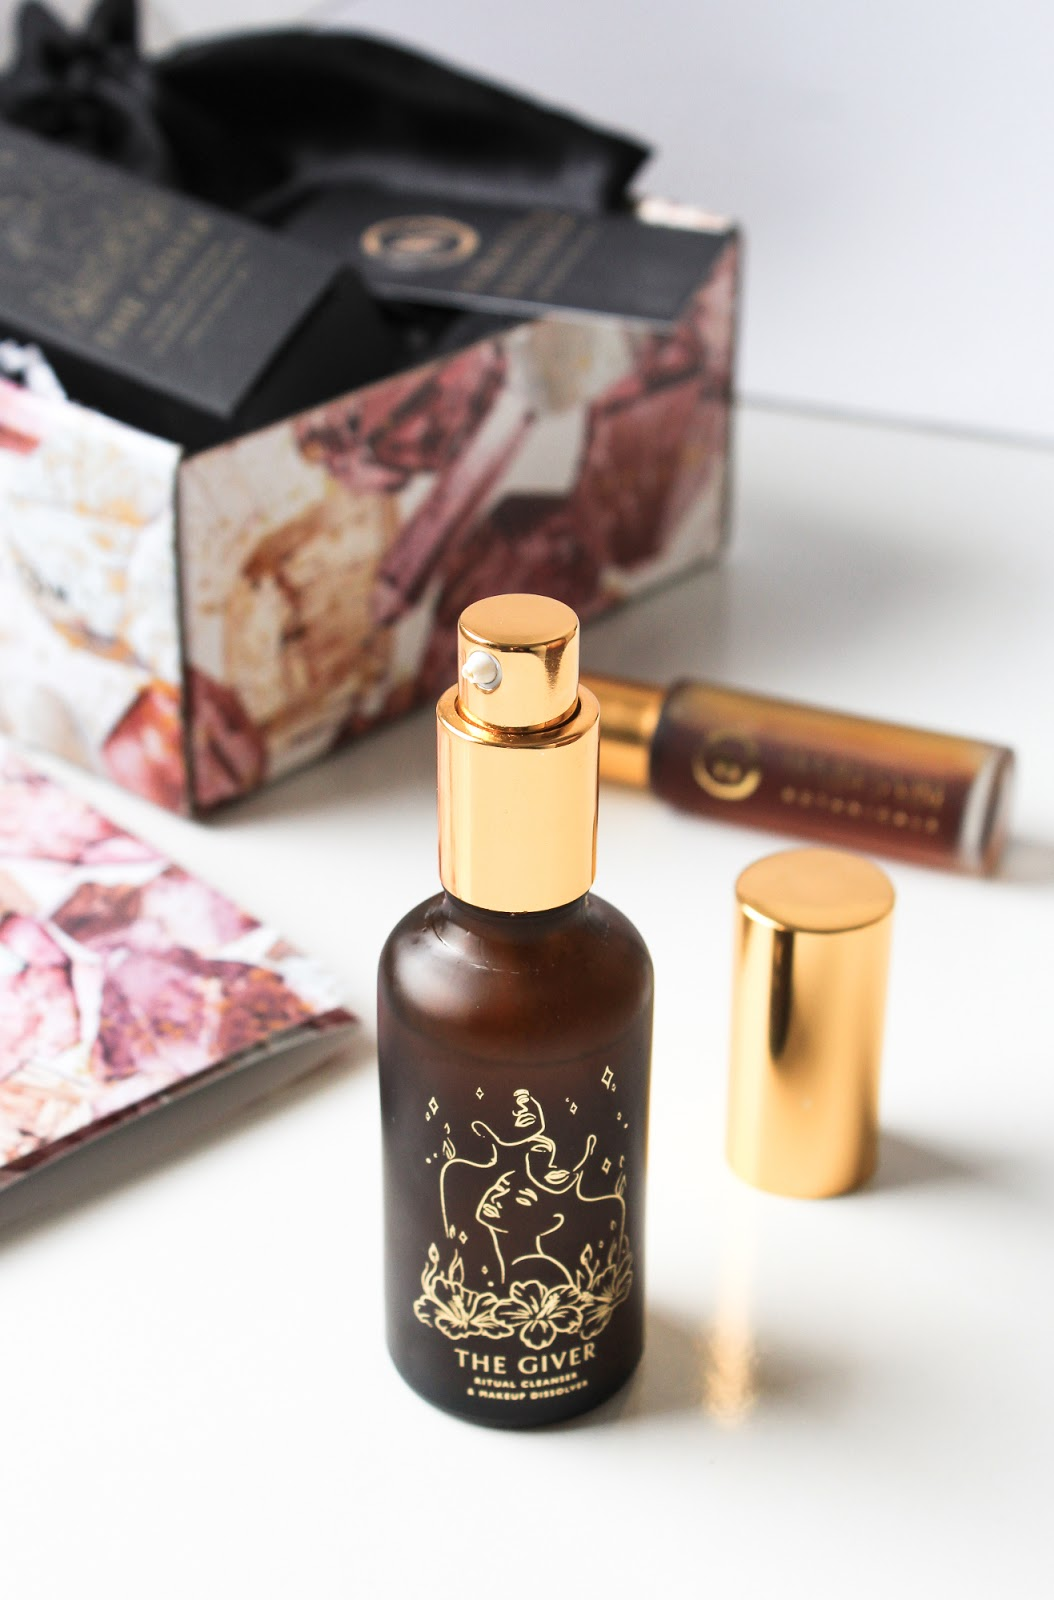 April Clean Beauty Box BALANCE Wabi-Sabi Botanicals The Giver Illuminative Ritual Cleanser